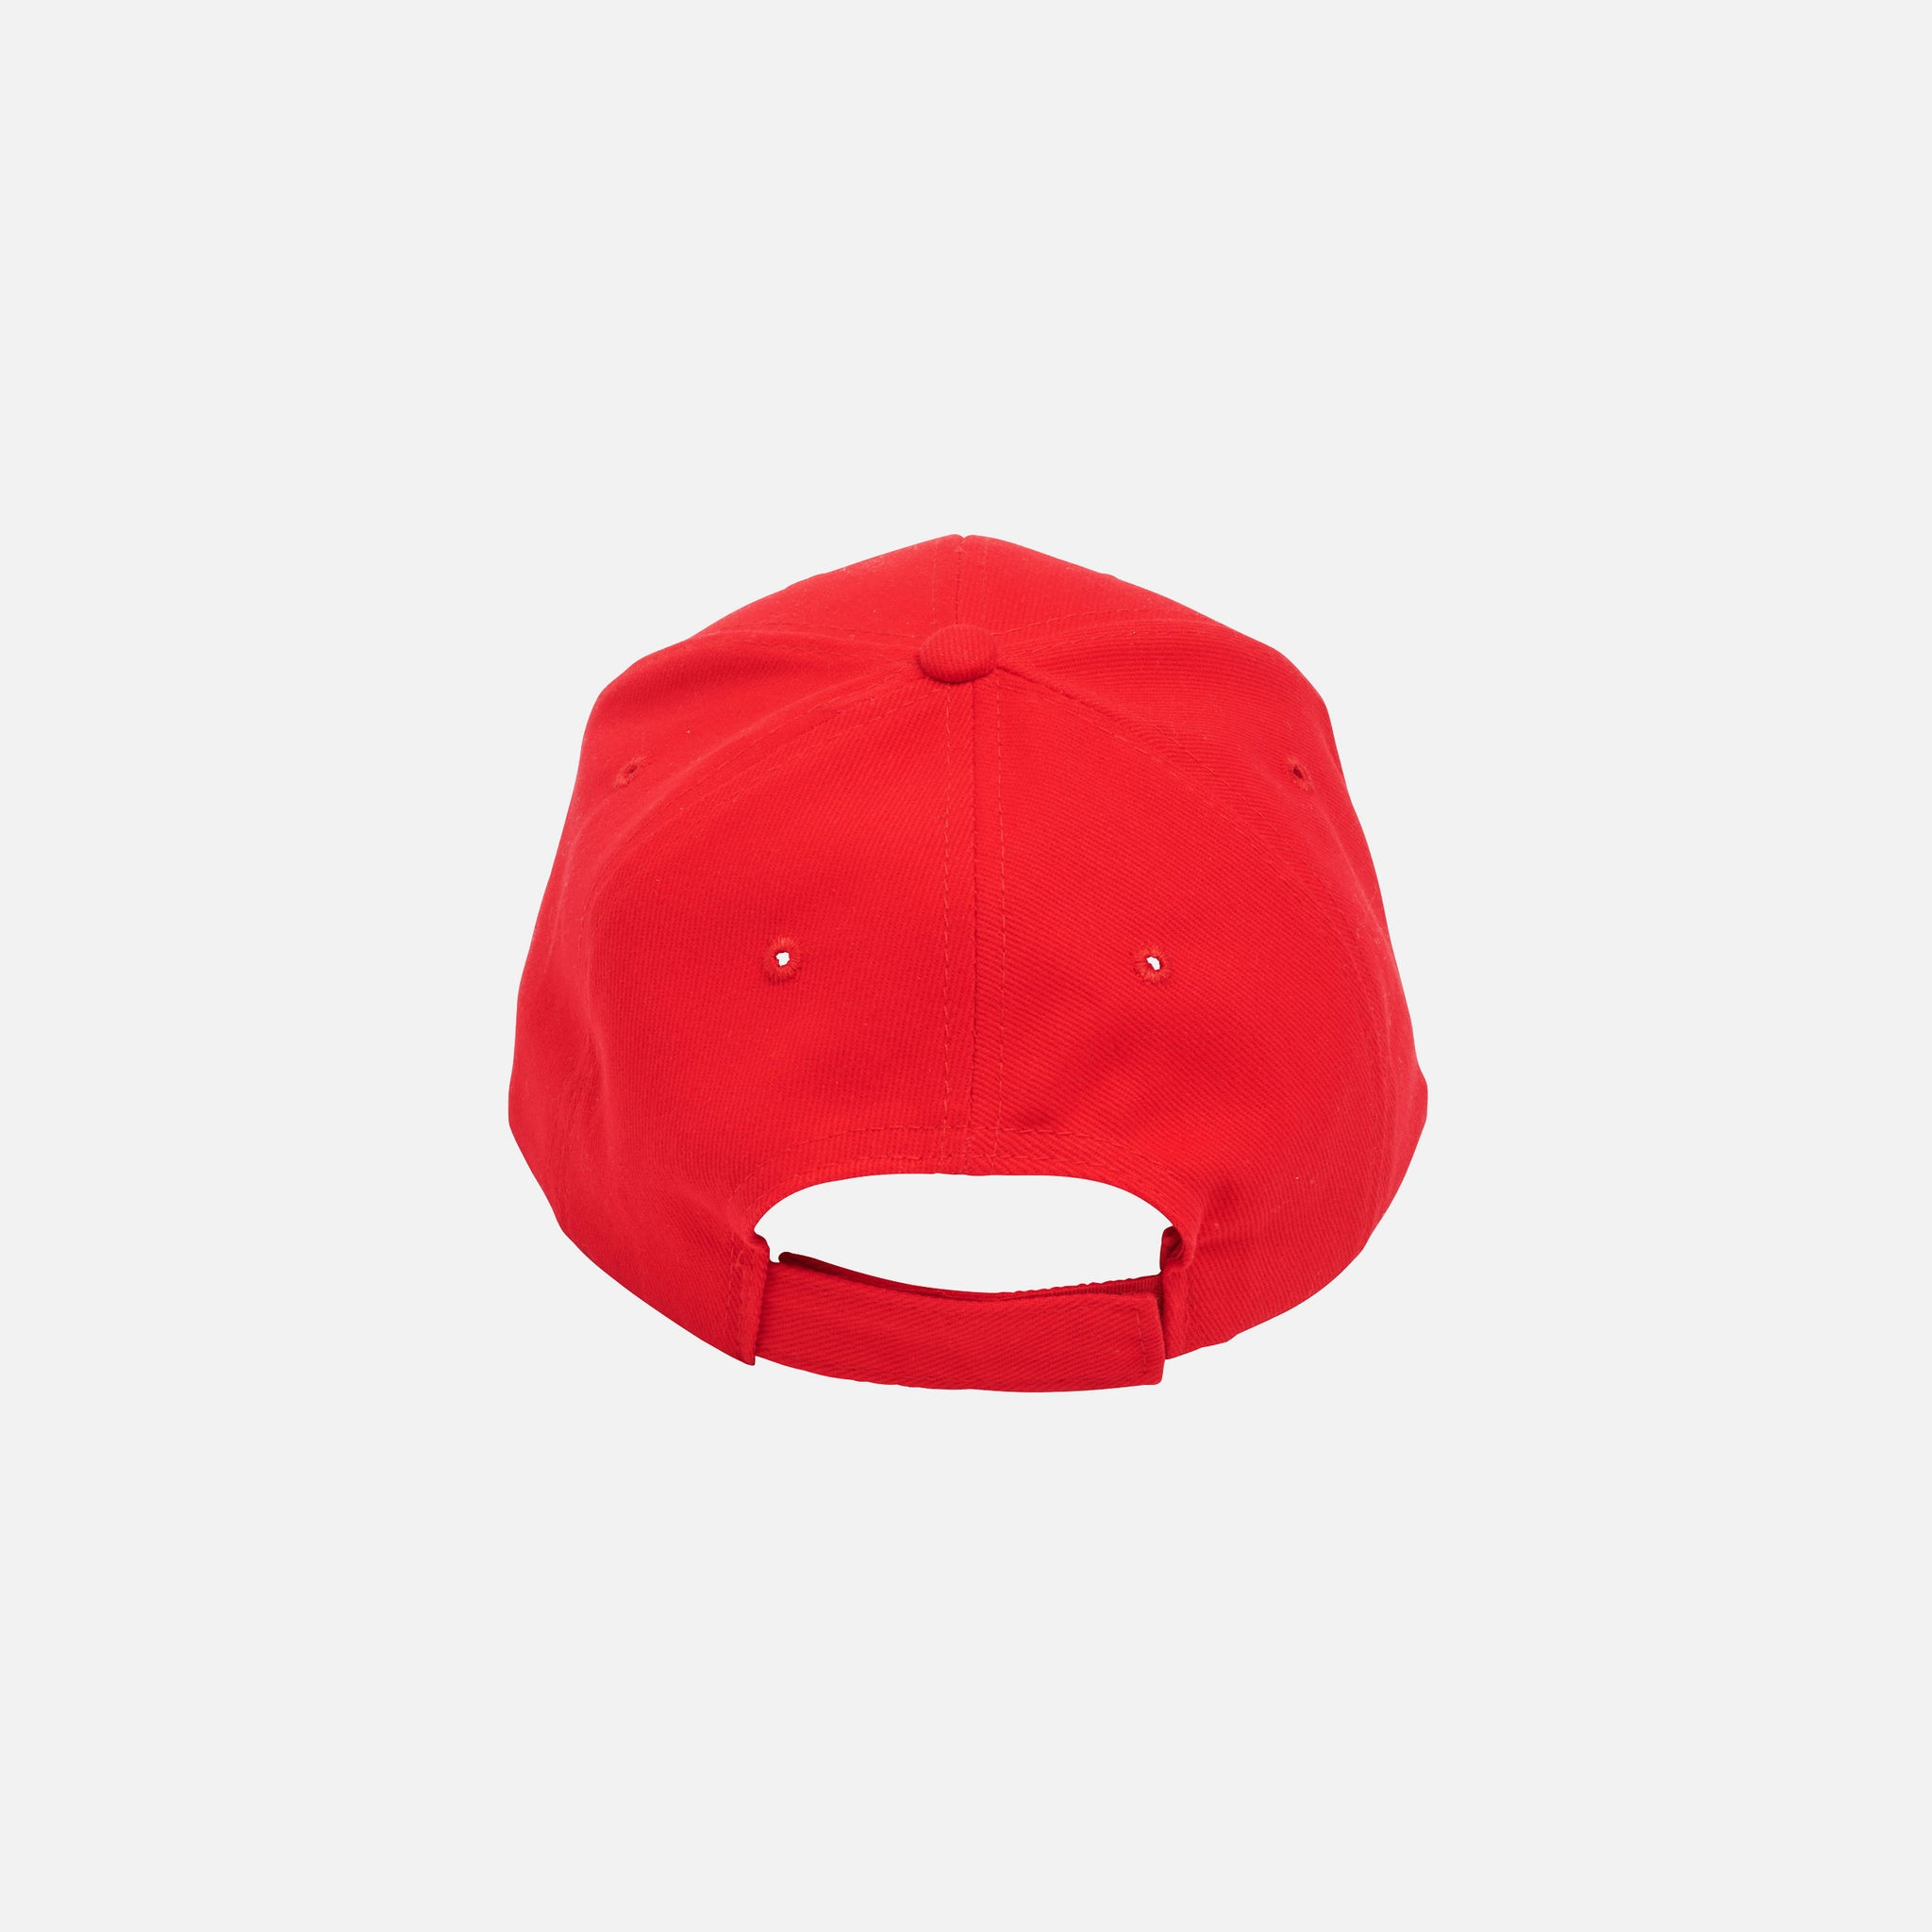 BF LOGO CAP - RED